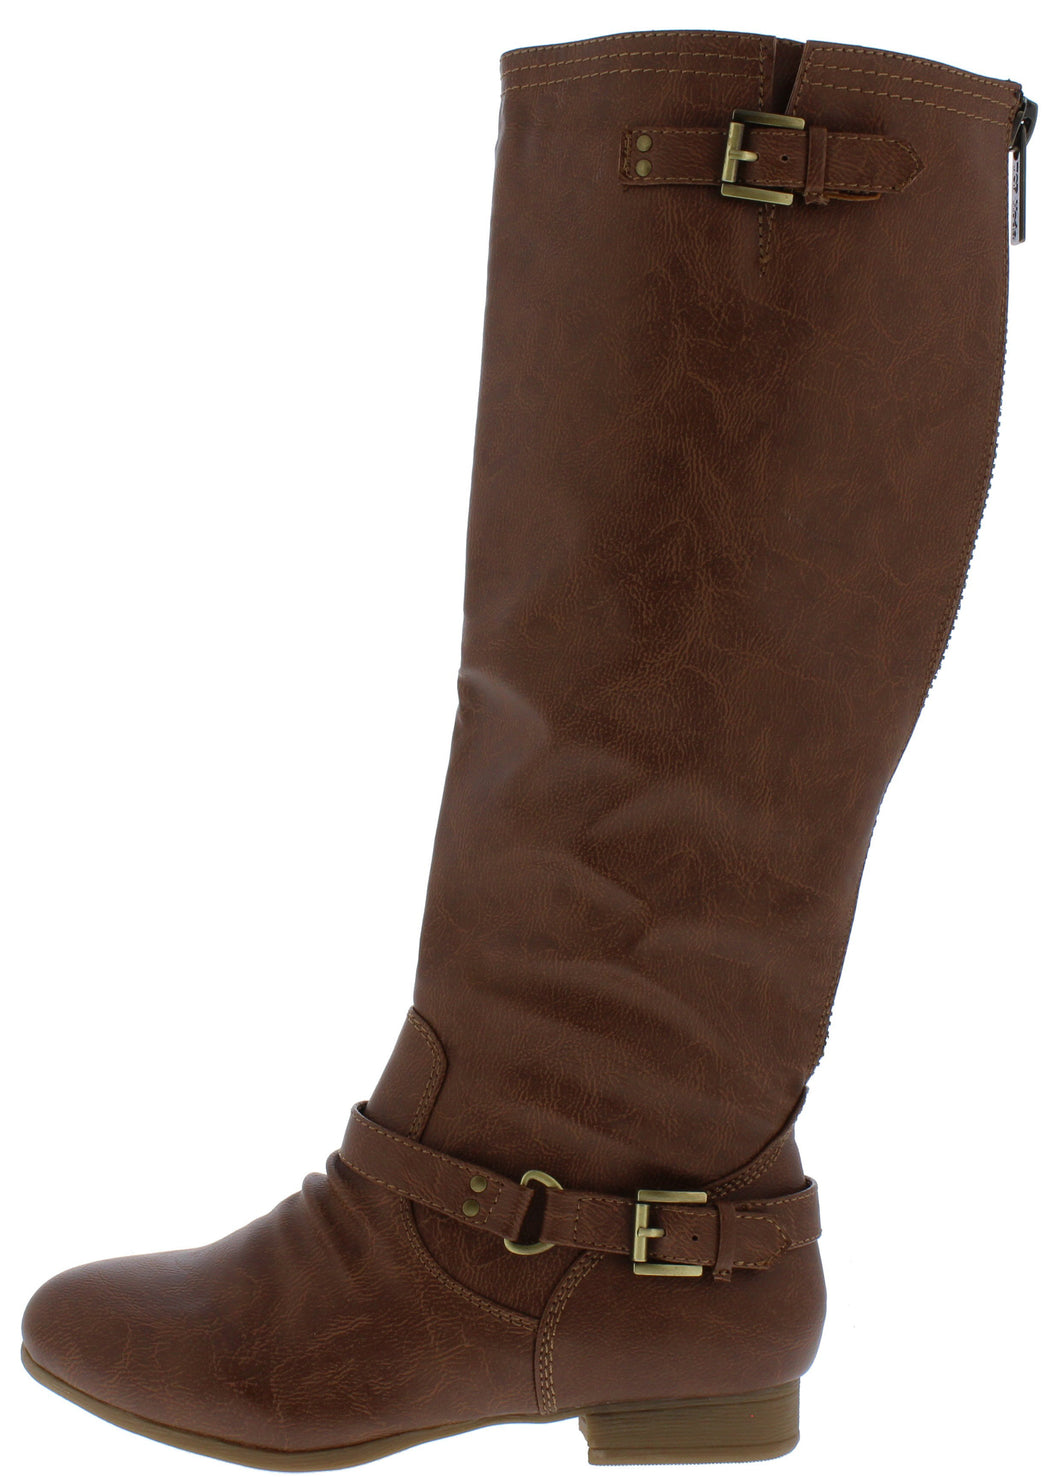 Coco1 Tan Dual Buckle Strap Knee High Boot - Wholesale Fashion Shoes ?id=15606862413868